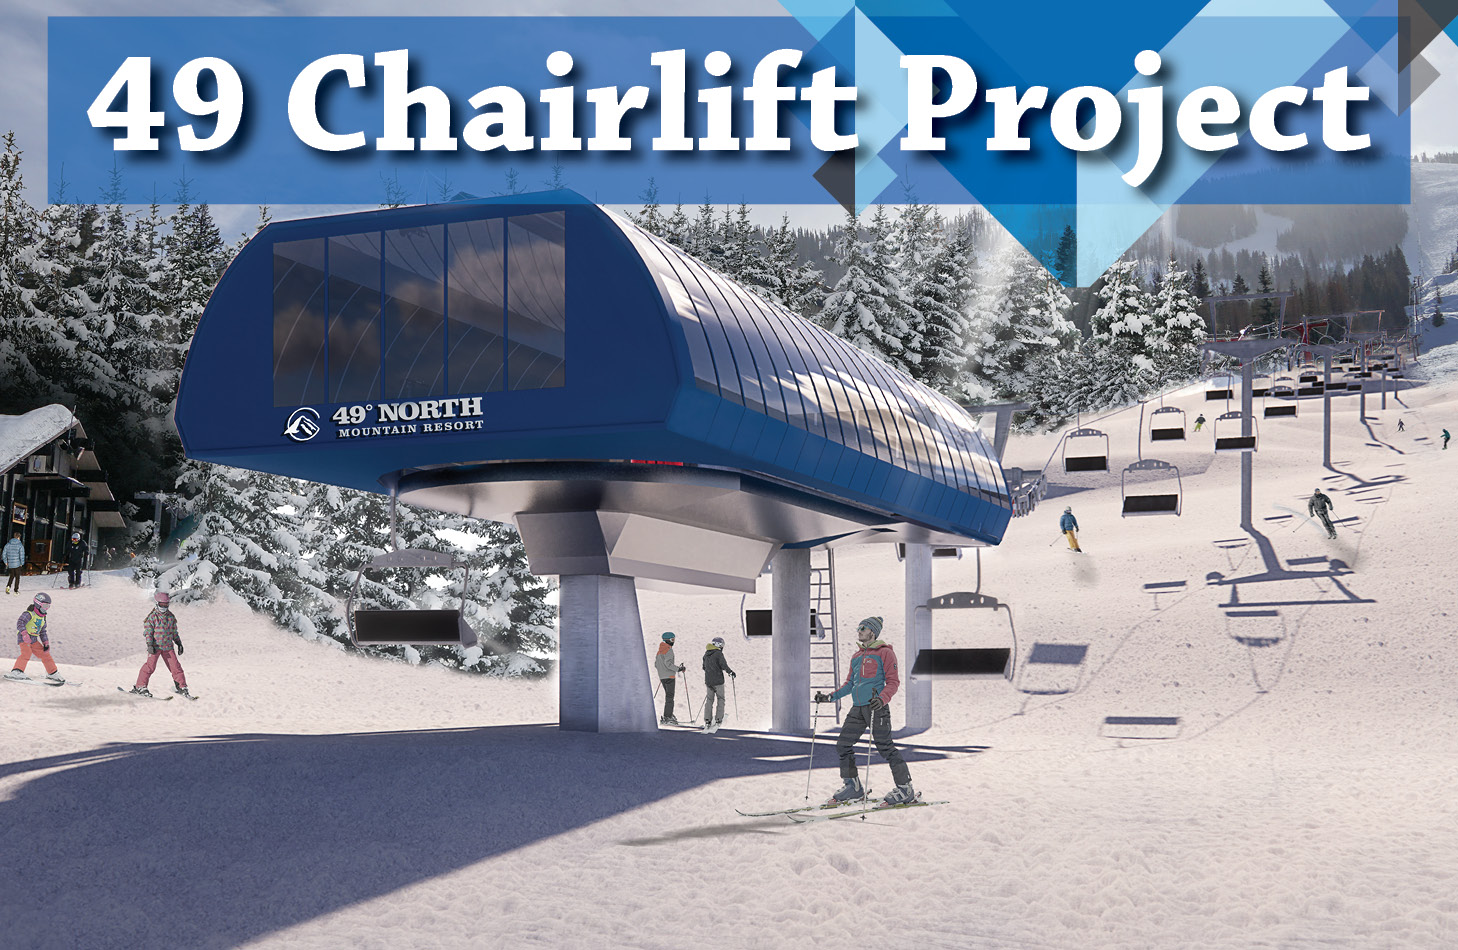 49 Chairlift Project